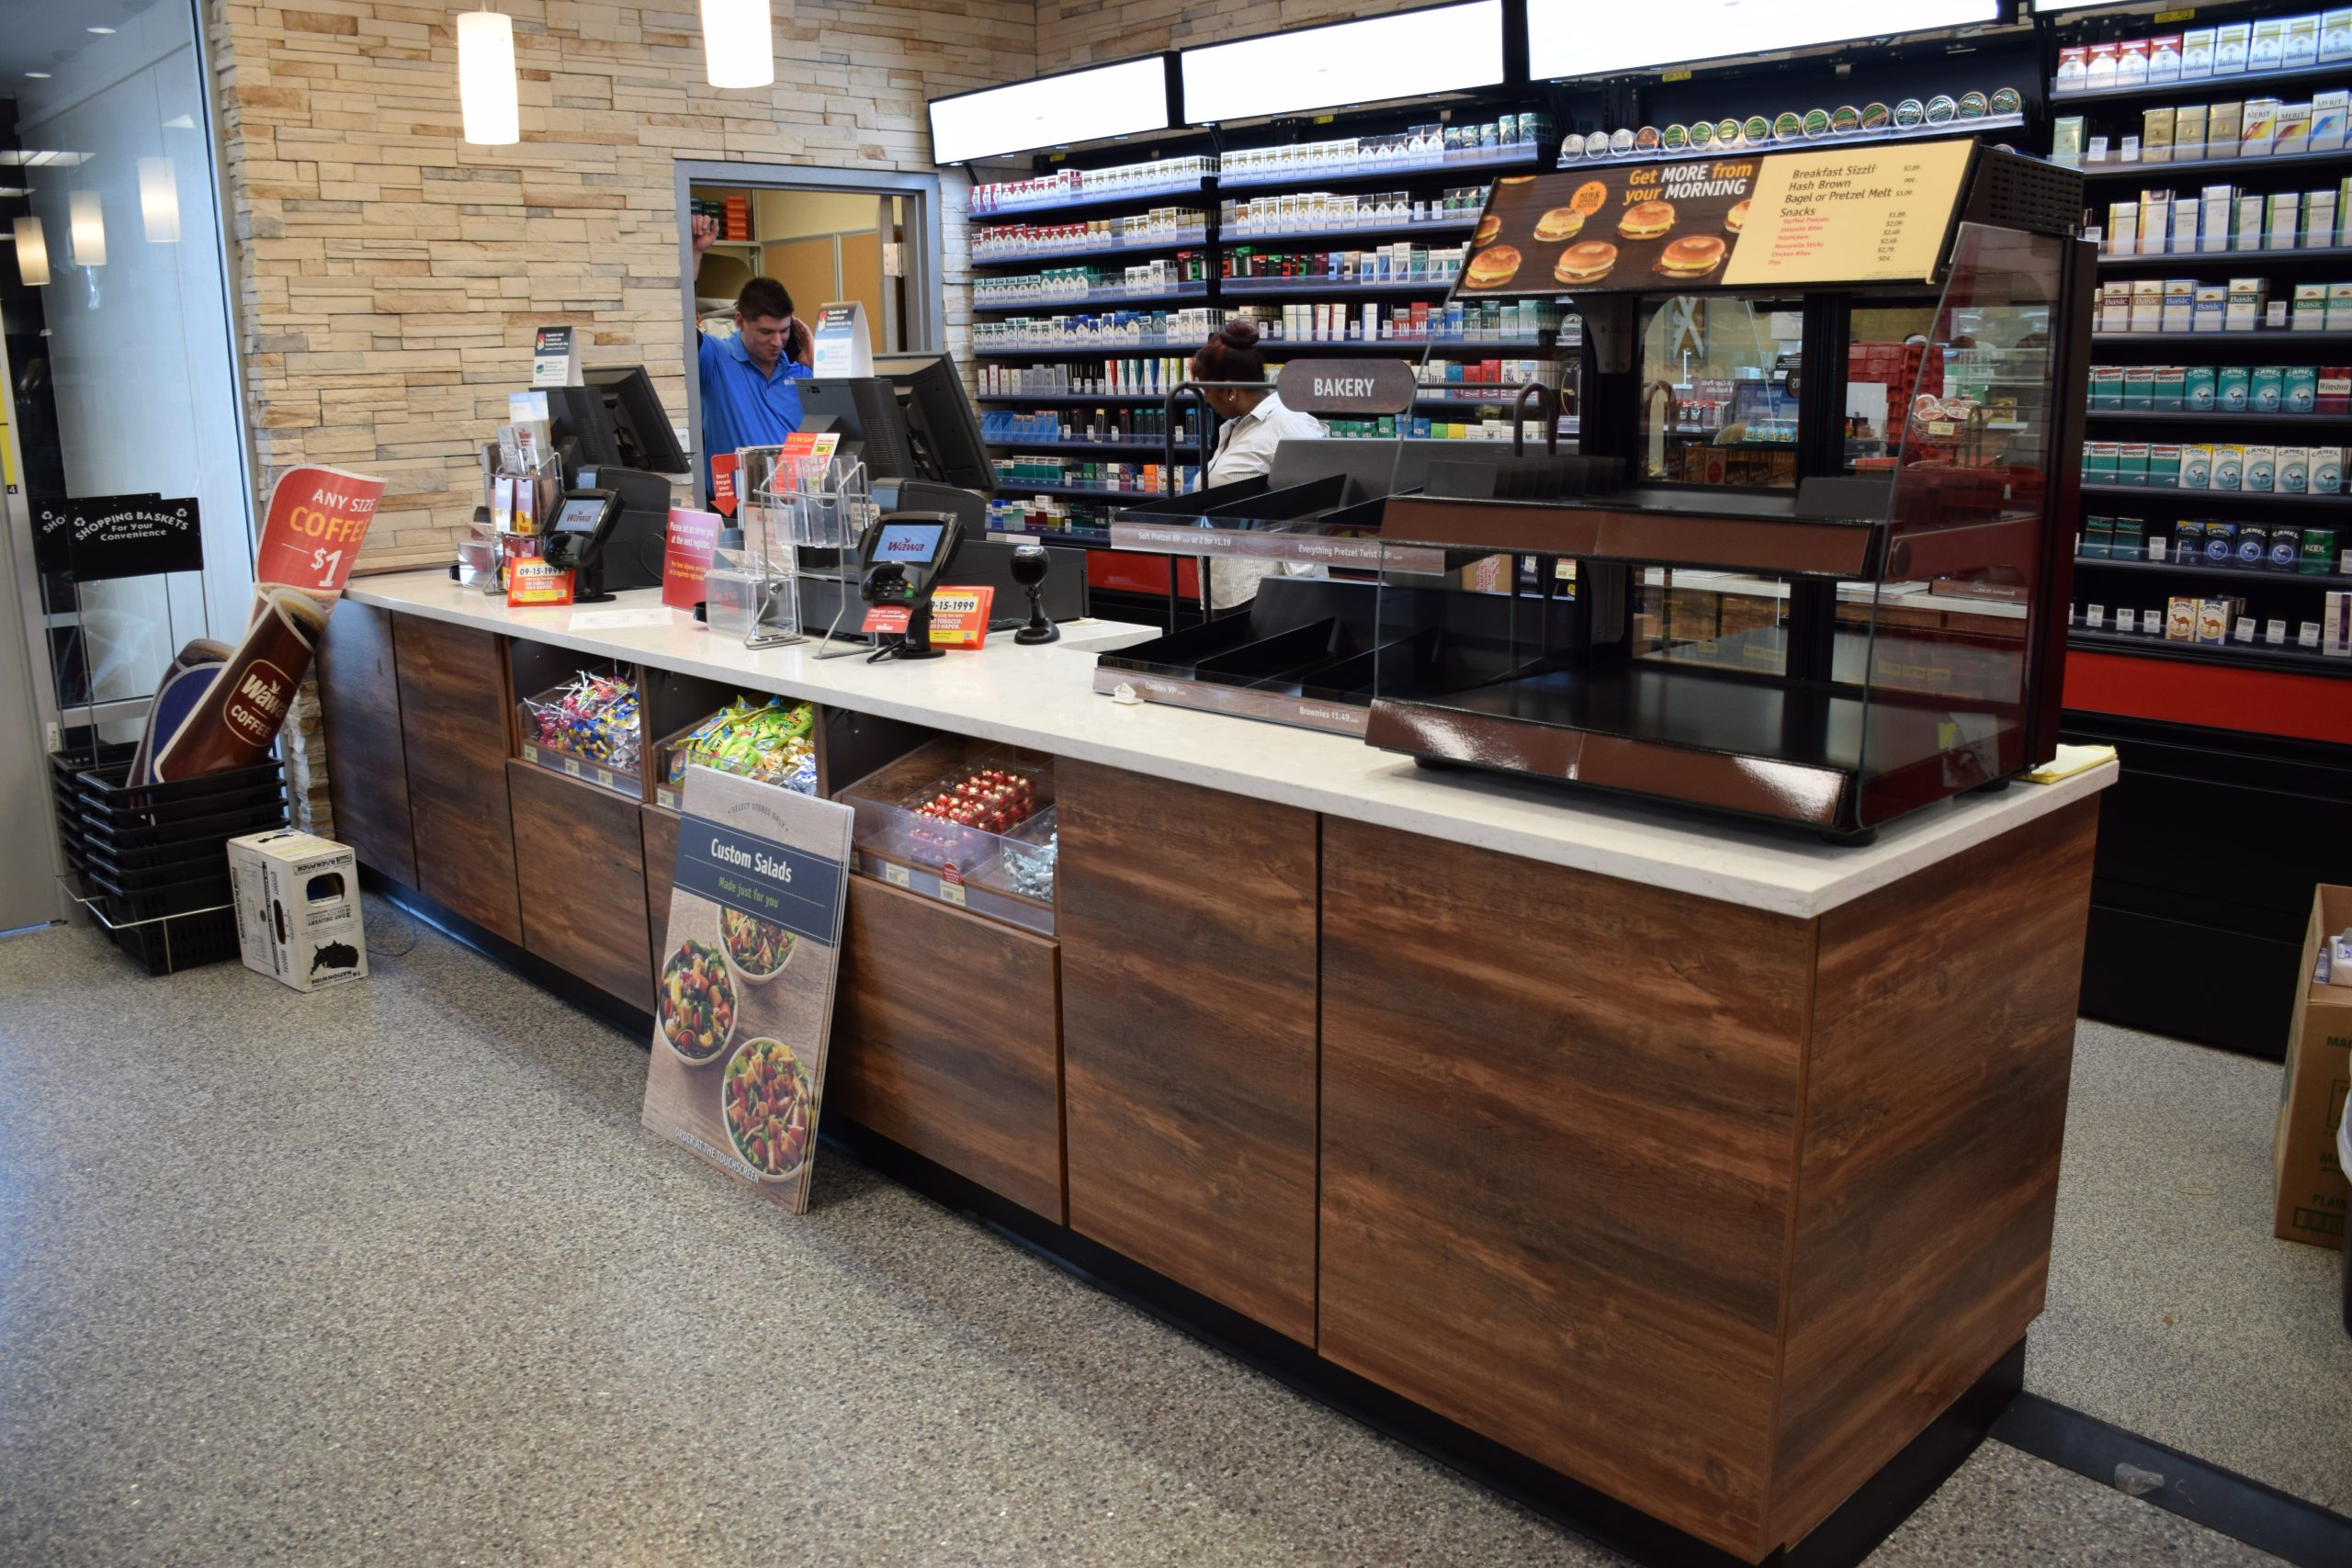 Wawa cigarette checkout area with point-of-sale candy and a breakfast sandwich display case